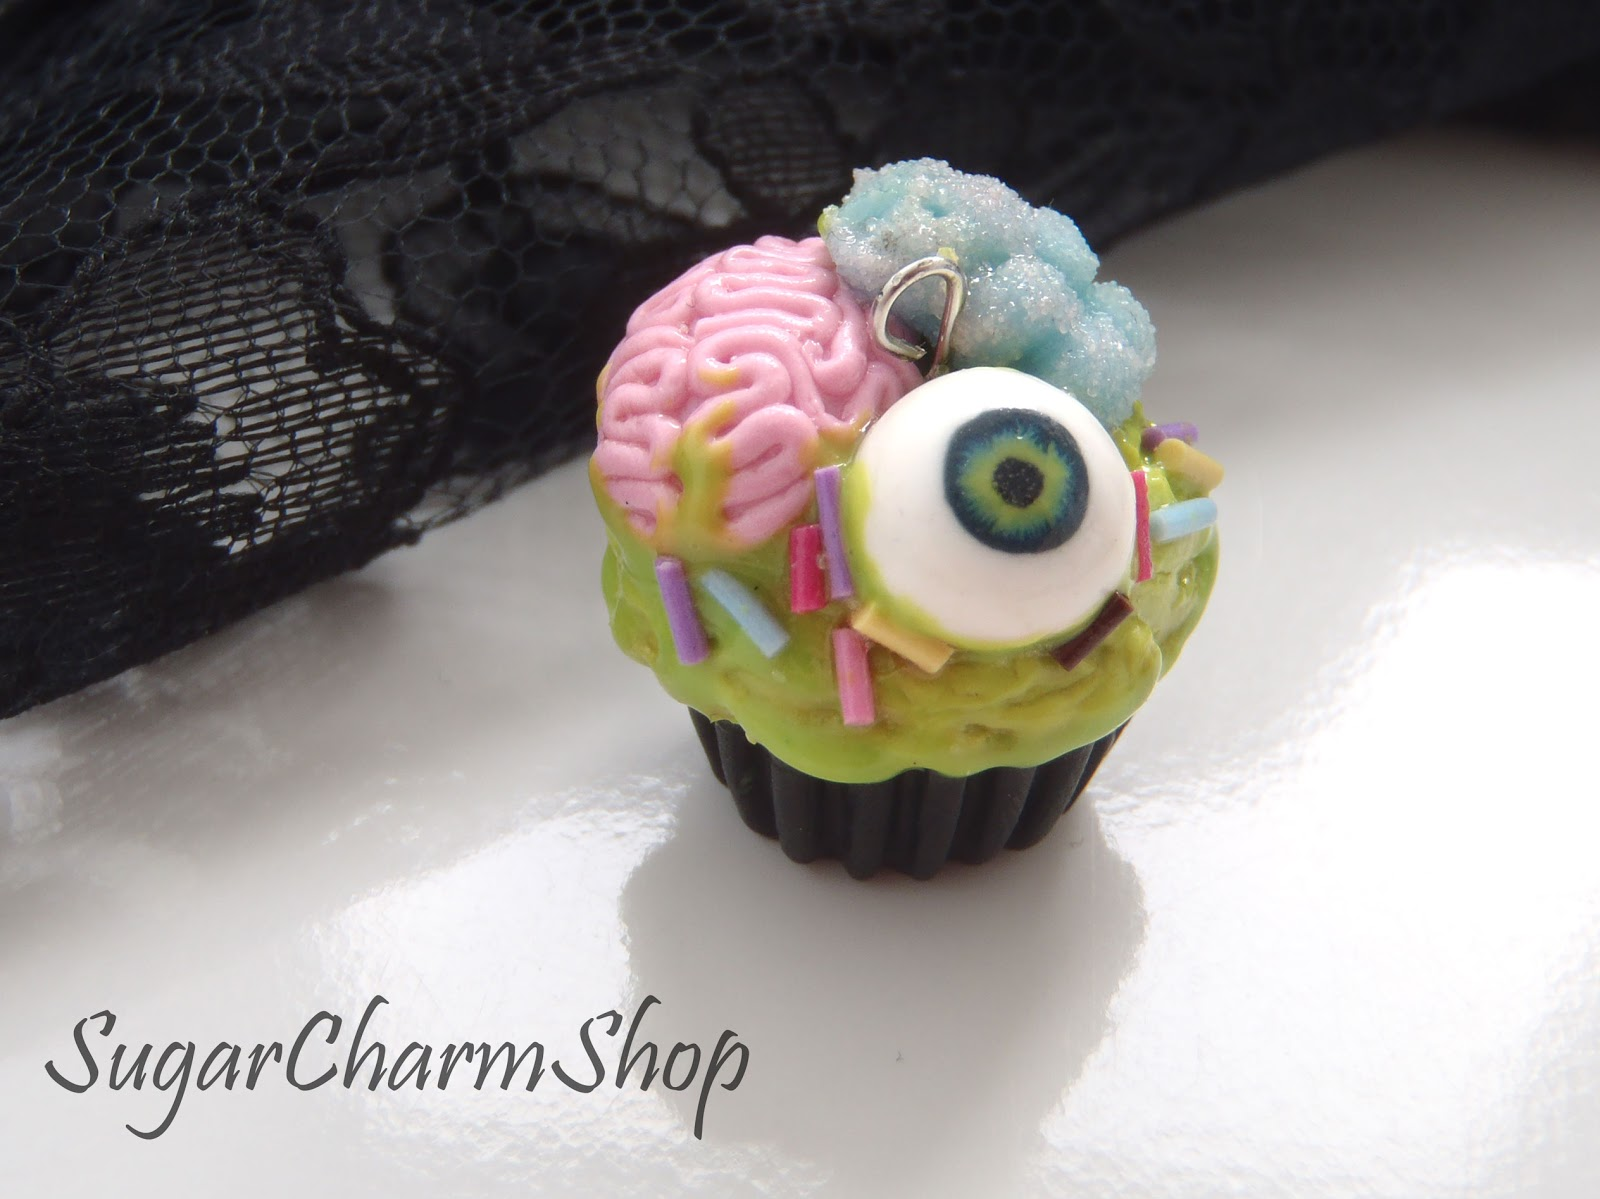 sugarcharmshop craft; polymer clay, jewelry and 1:12 scale